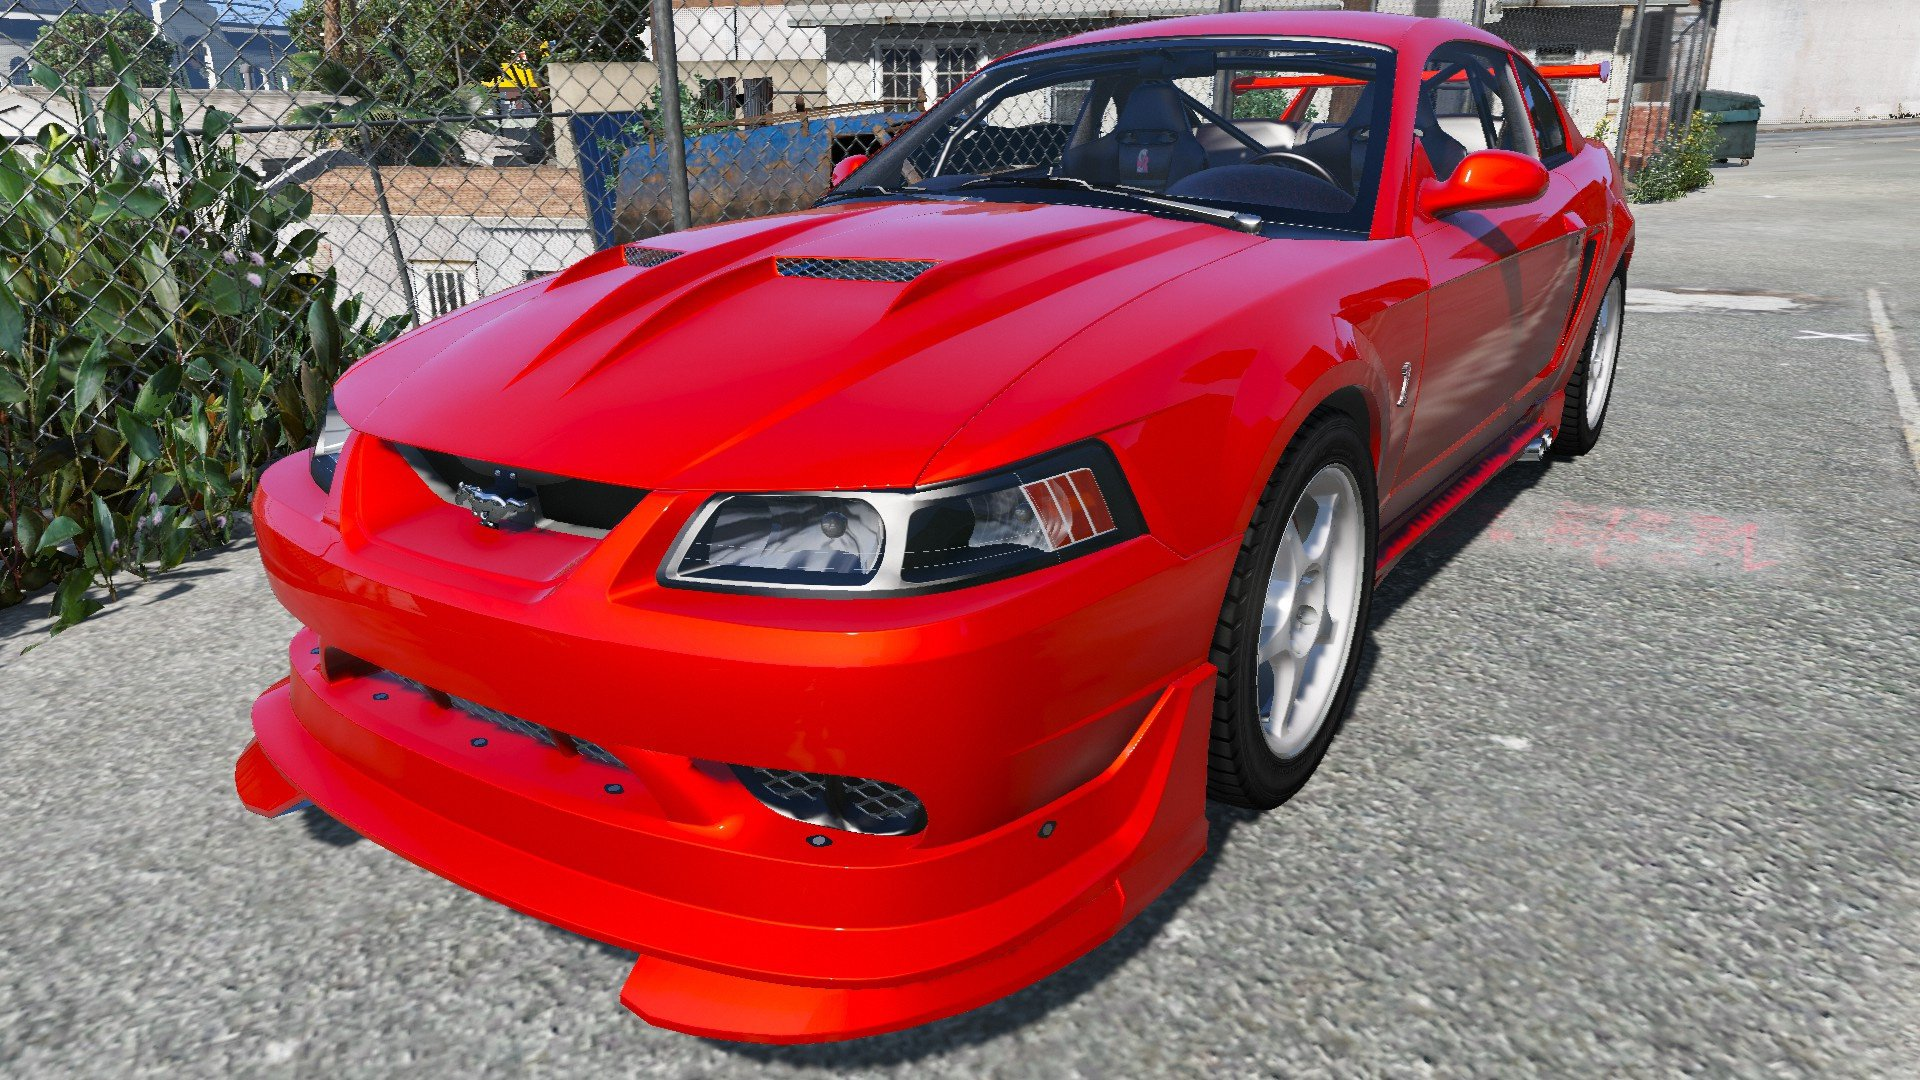 ford mustang cobra r 2000 vehicules pour gta v sur gta modding. Black Bedroom Furniture Sets. Home Design Ideas